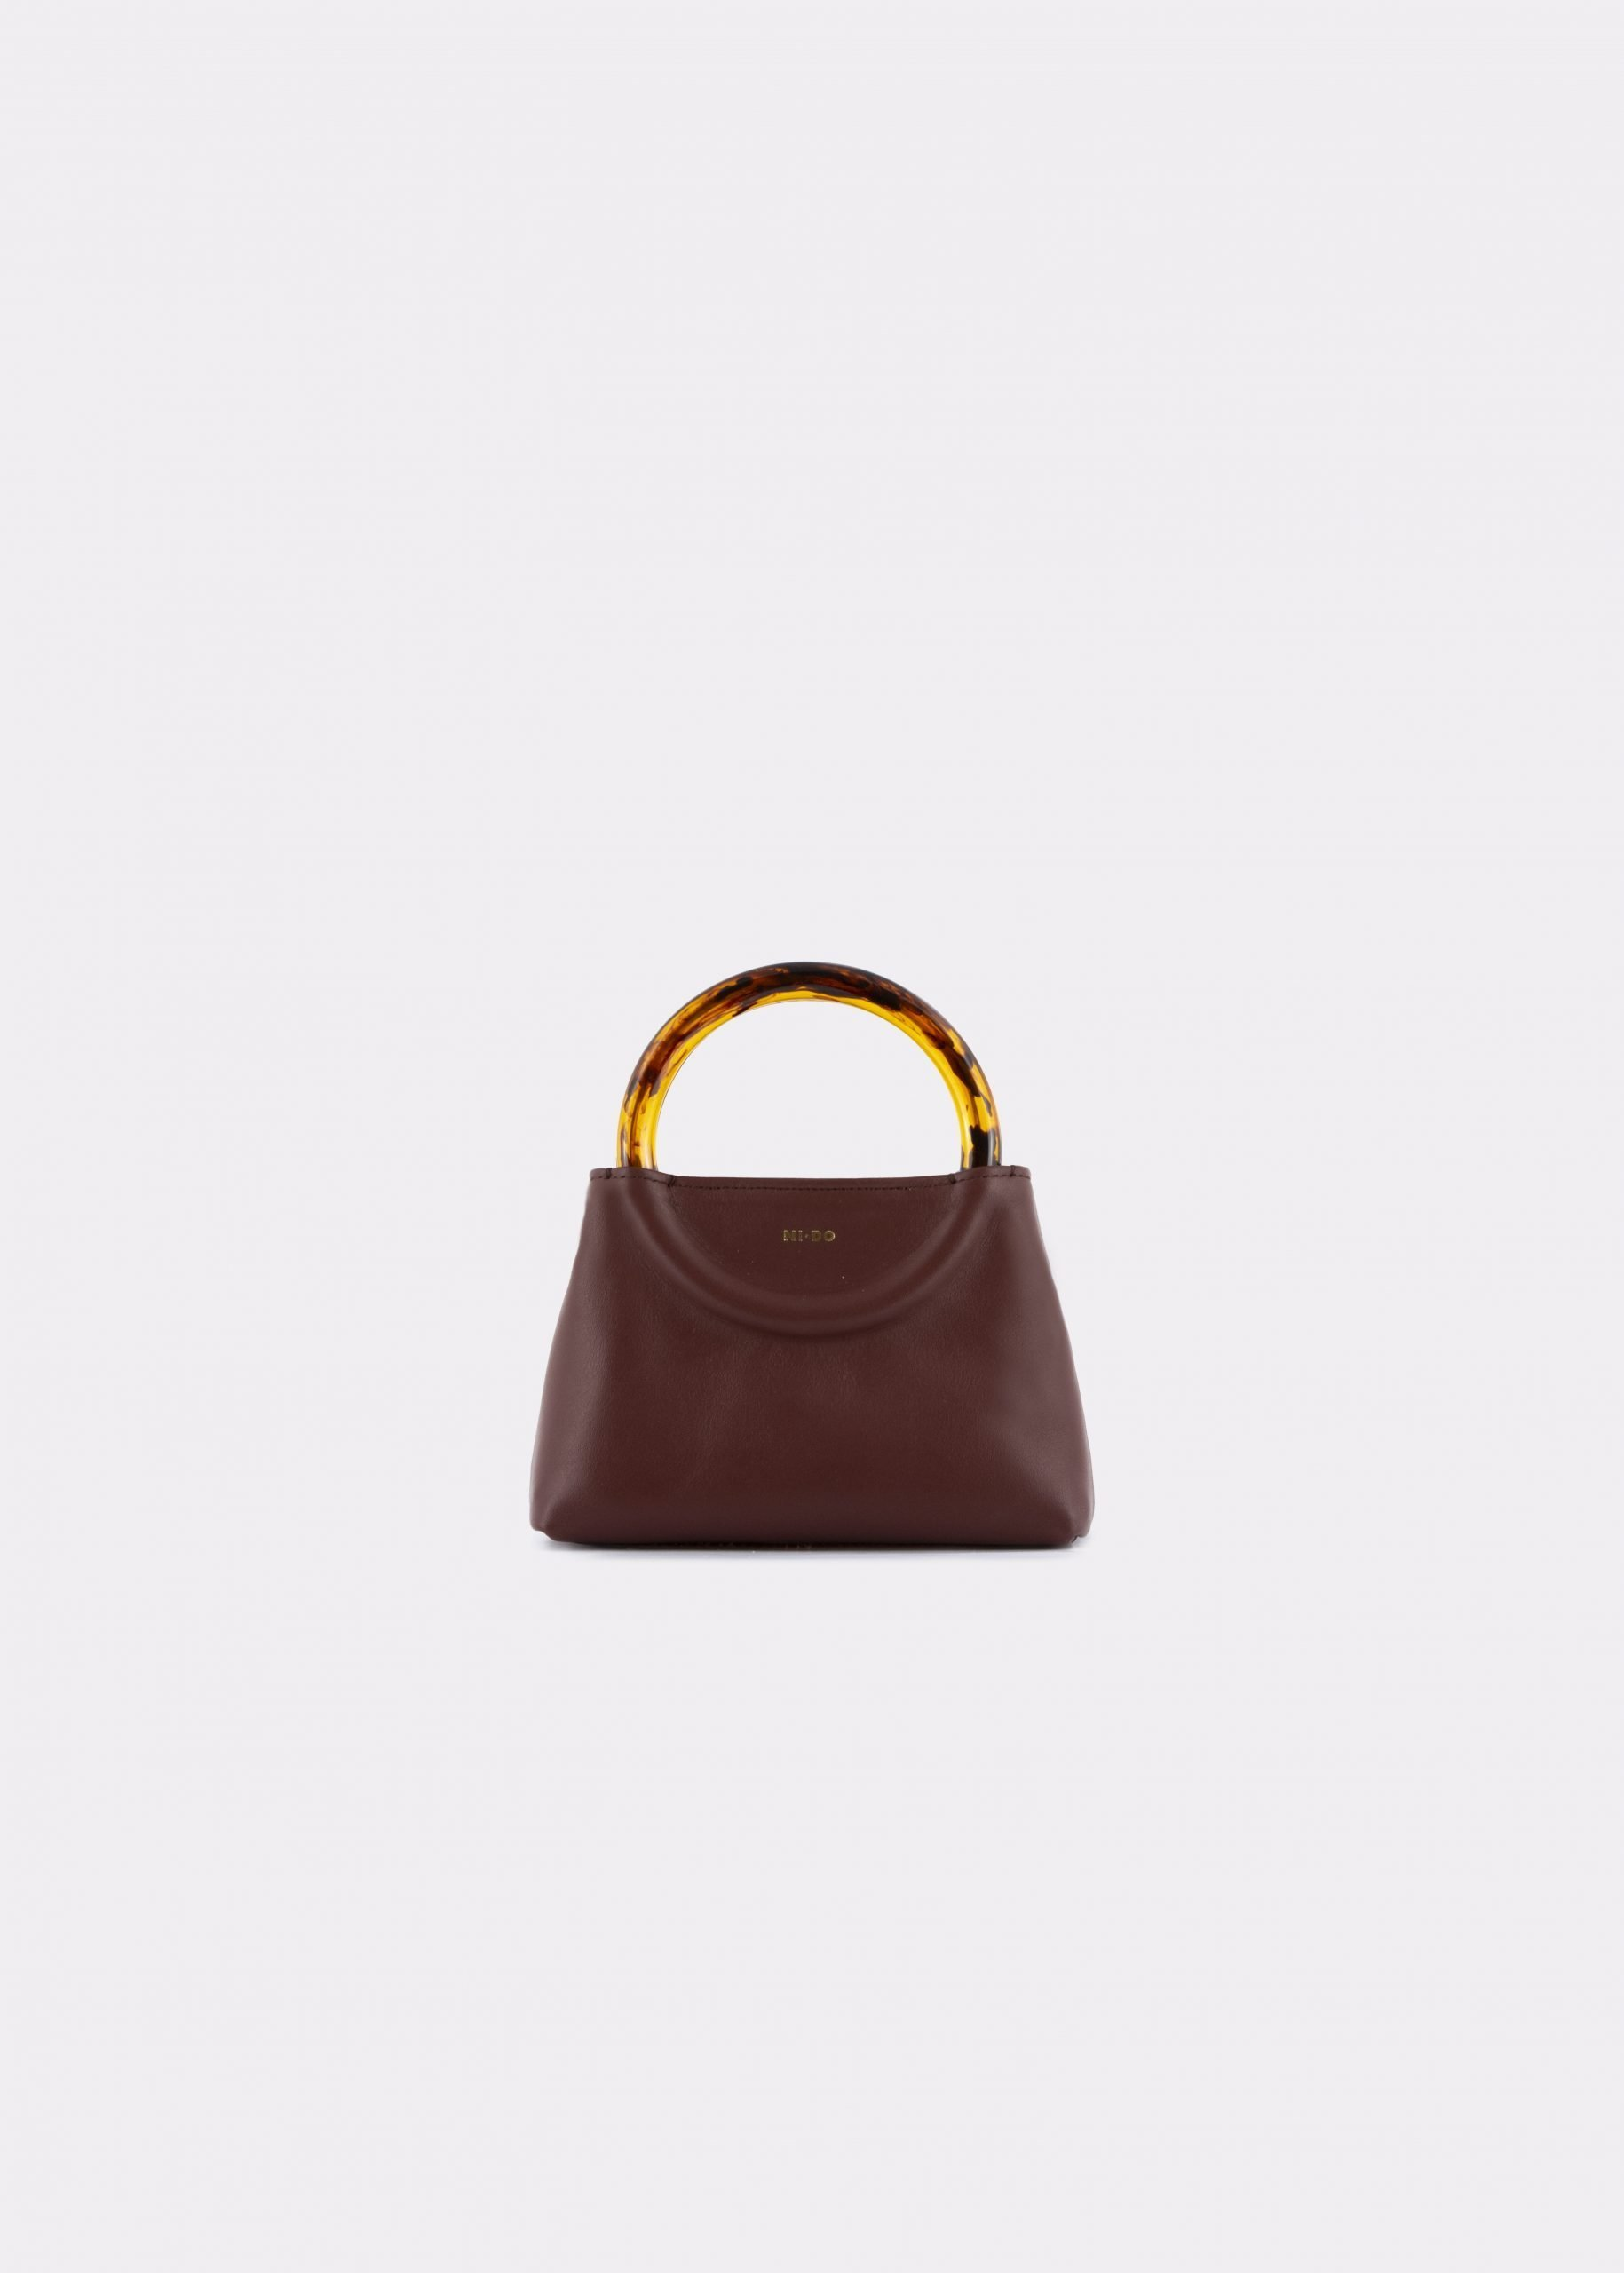 NIDO Bolla Micro bag brown leather Amber_front view